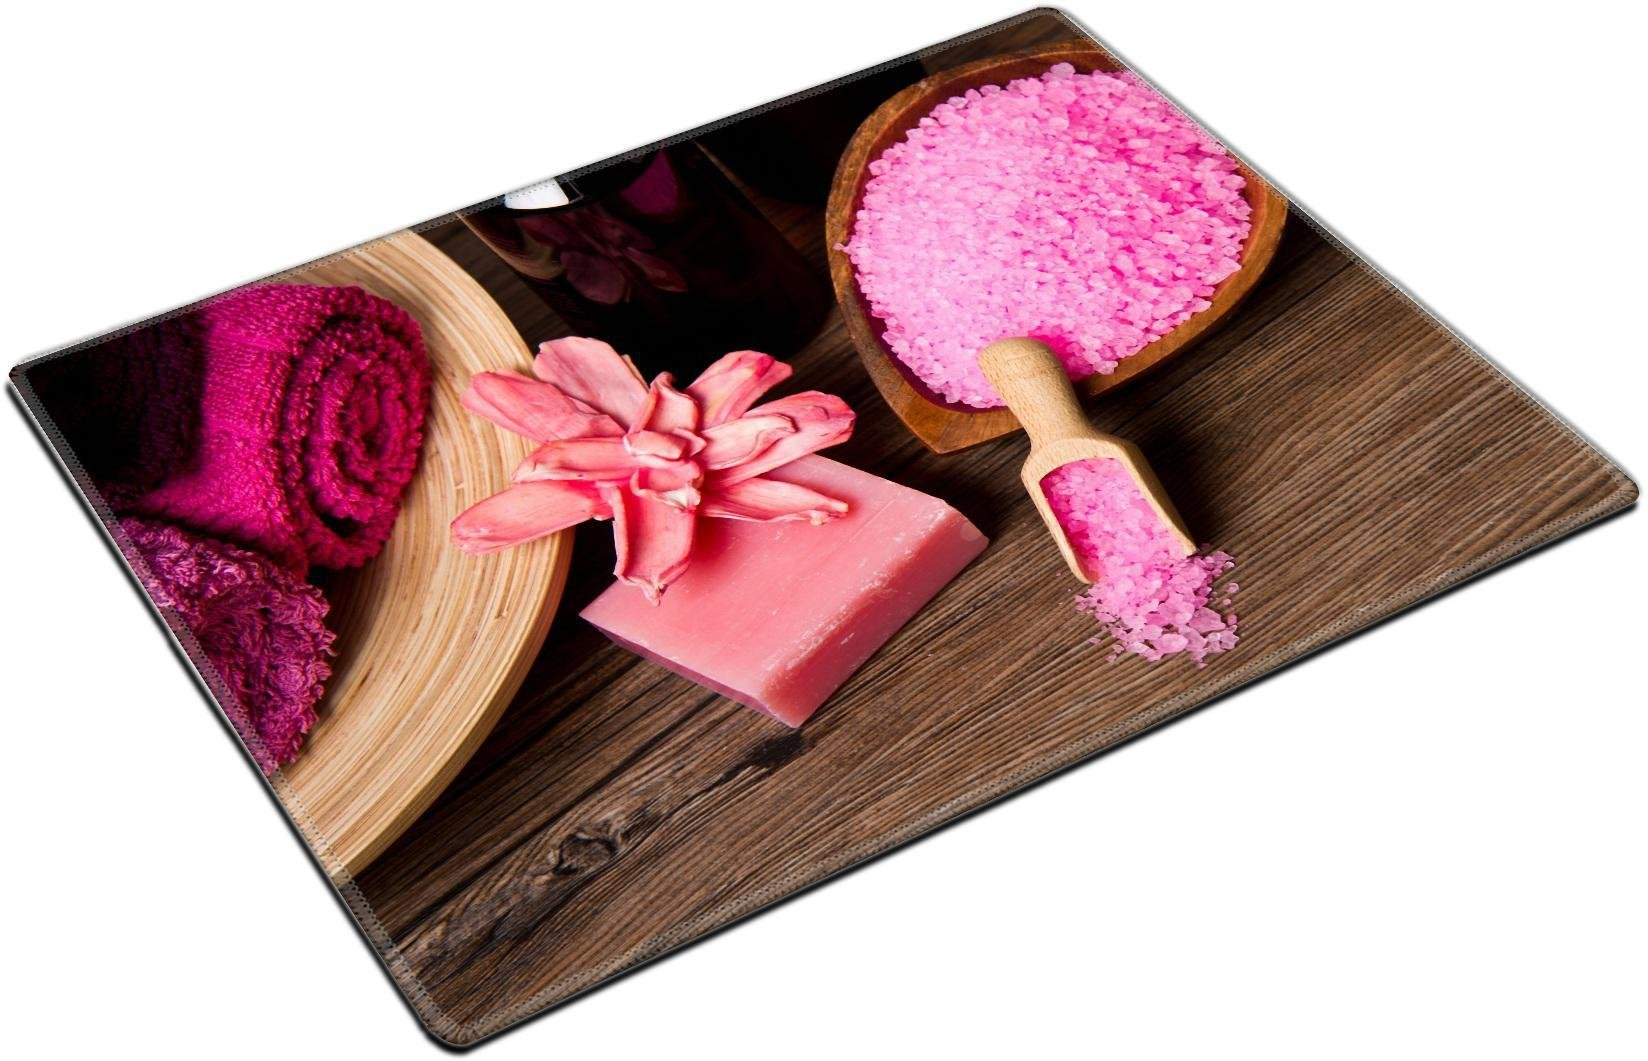 MSD Placemat Non-Slip Natural Rubber Desk Pads Place-mats Design 23908738 Pink Spa Tools with Candle AMD Towel on Wood